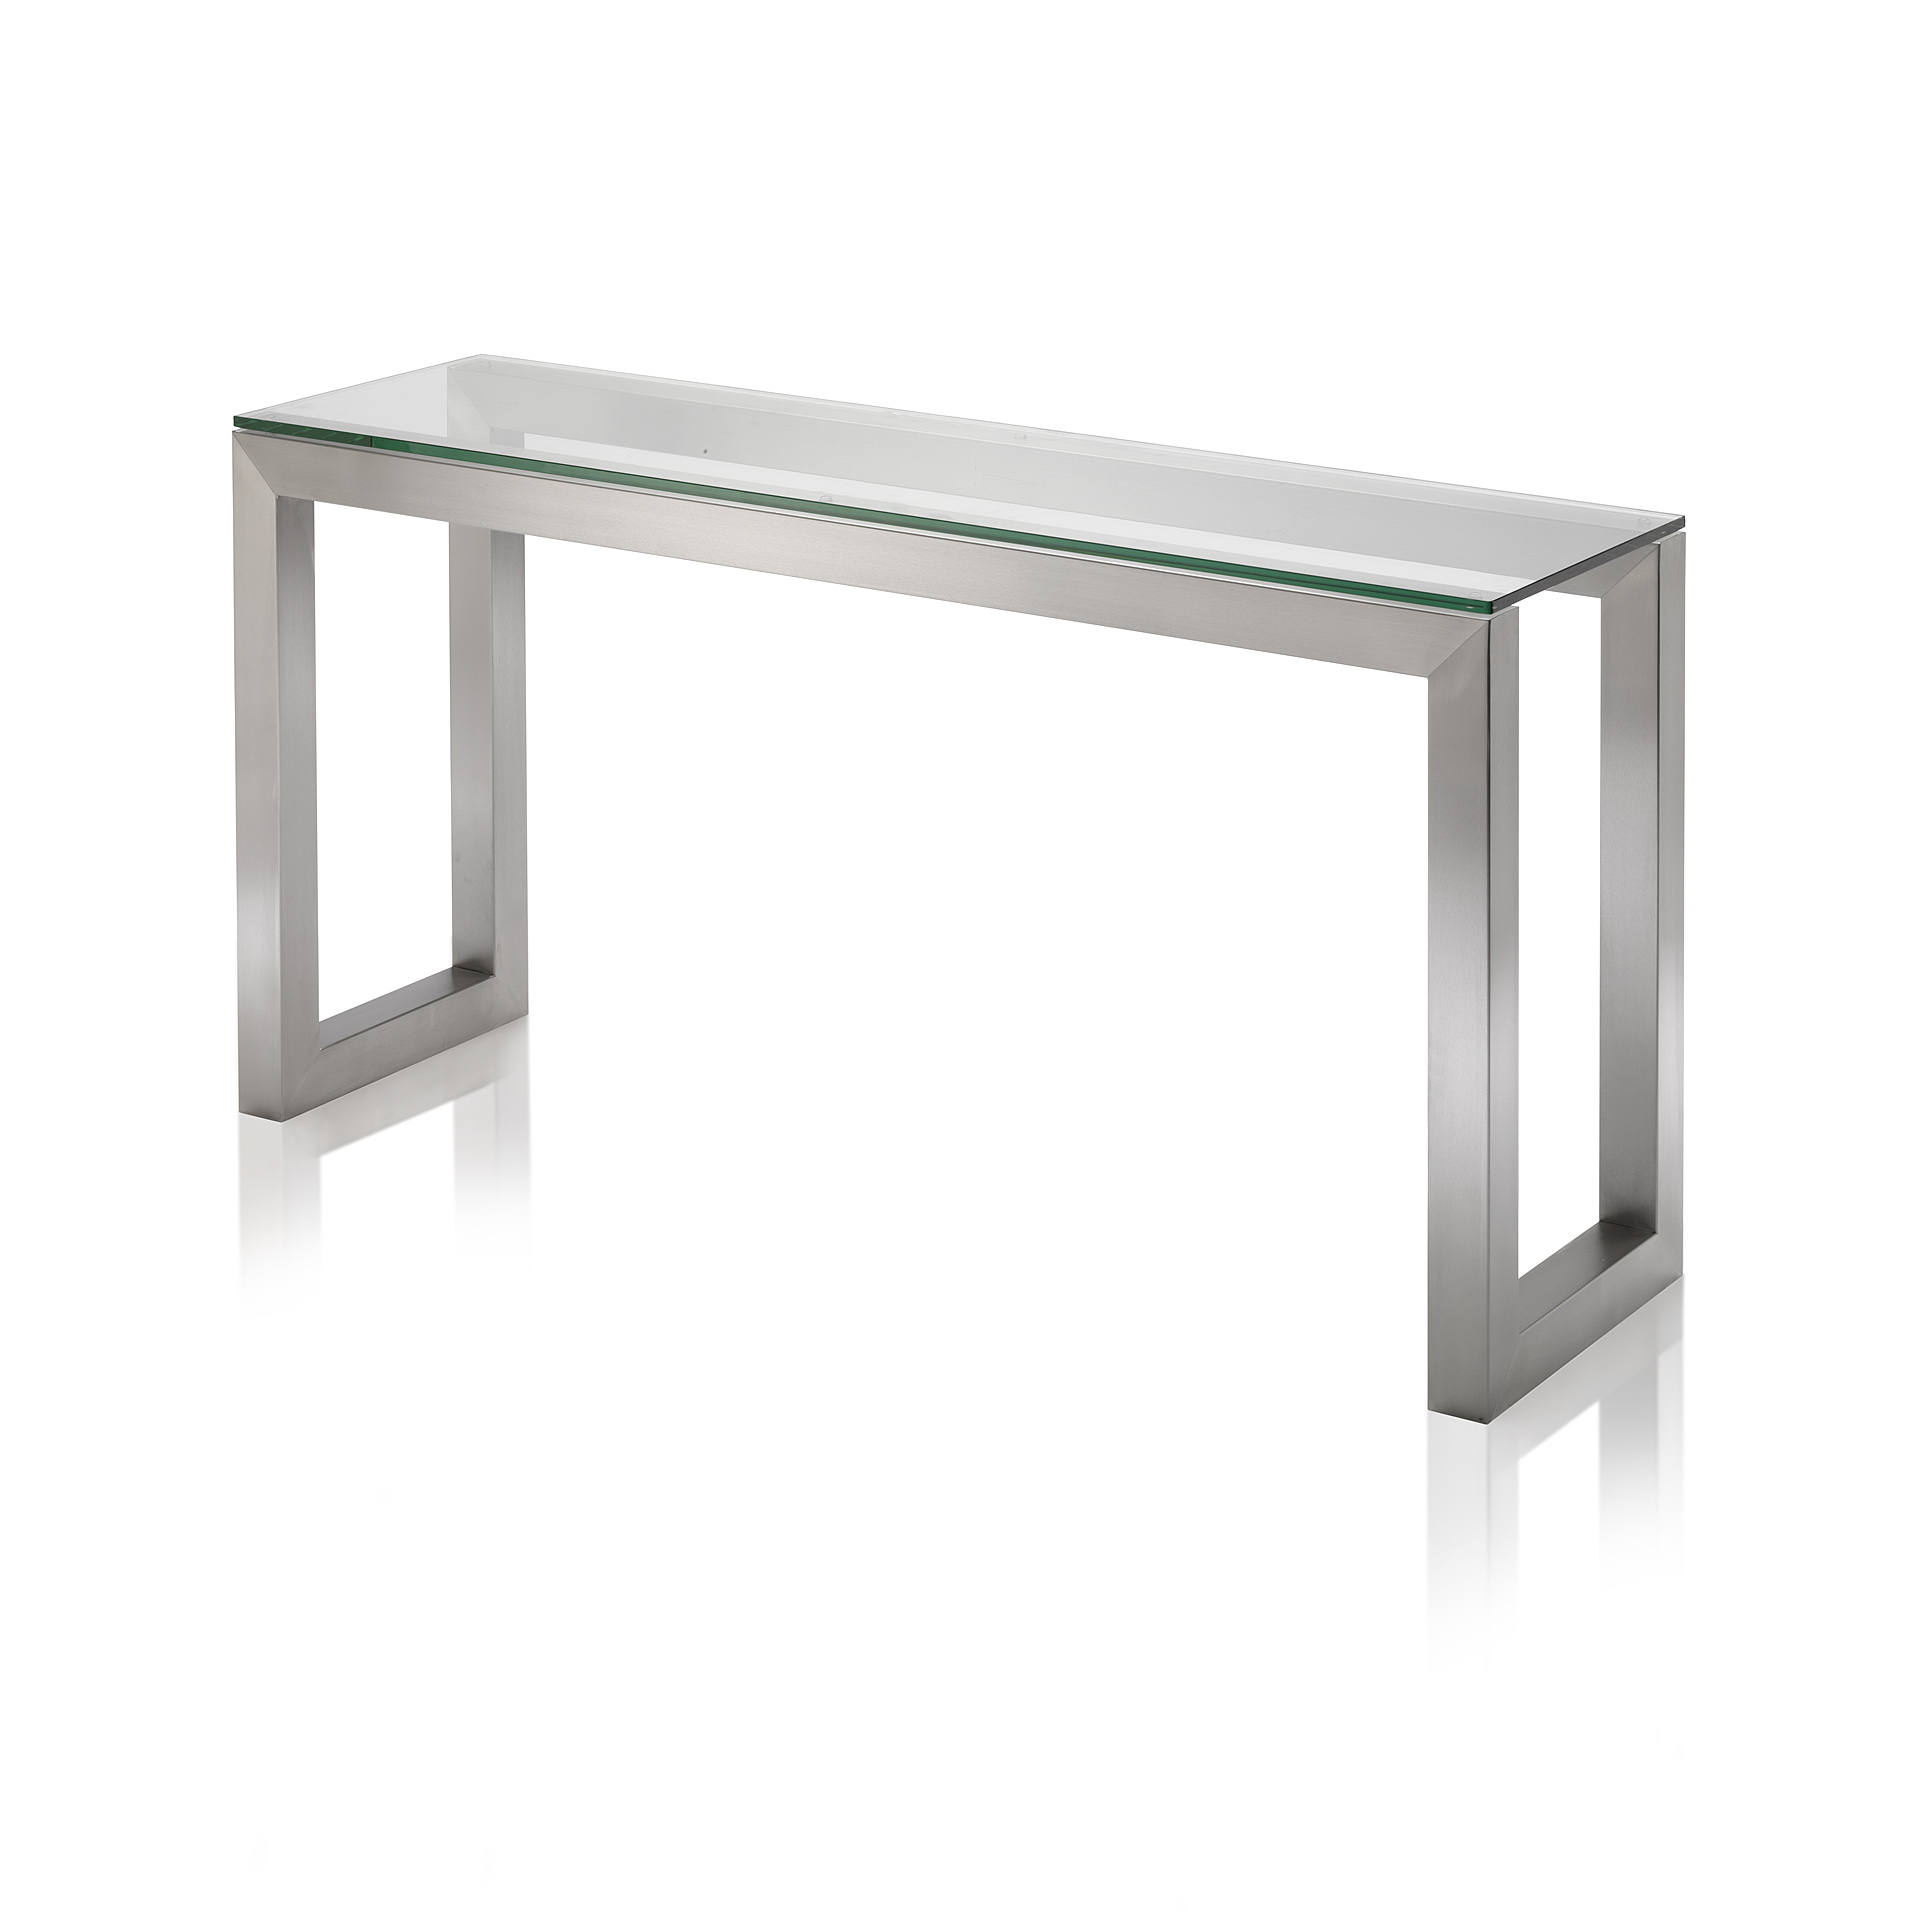 Console Meuble Fly Fly Konsol Bord Console Table Heine Design